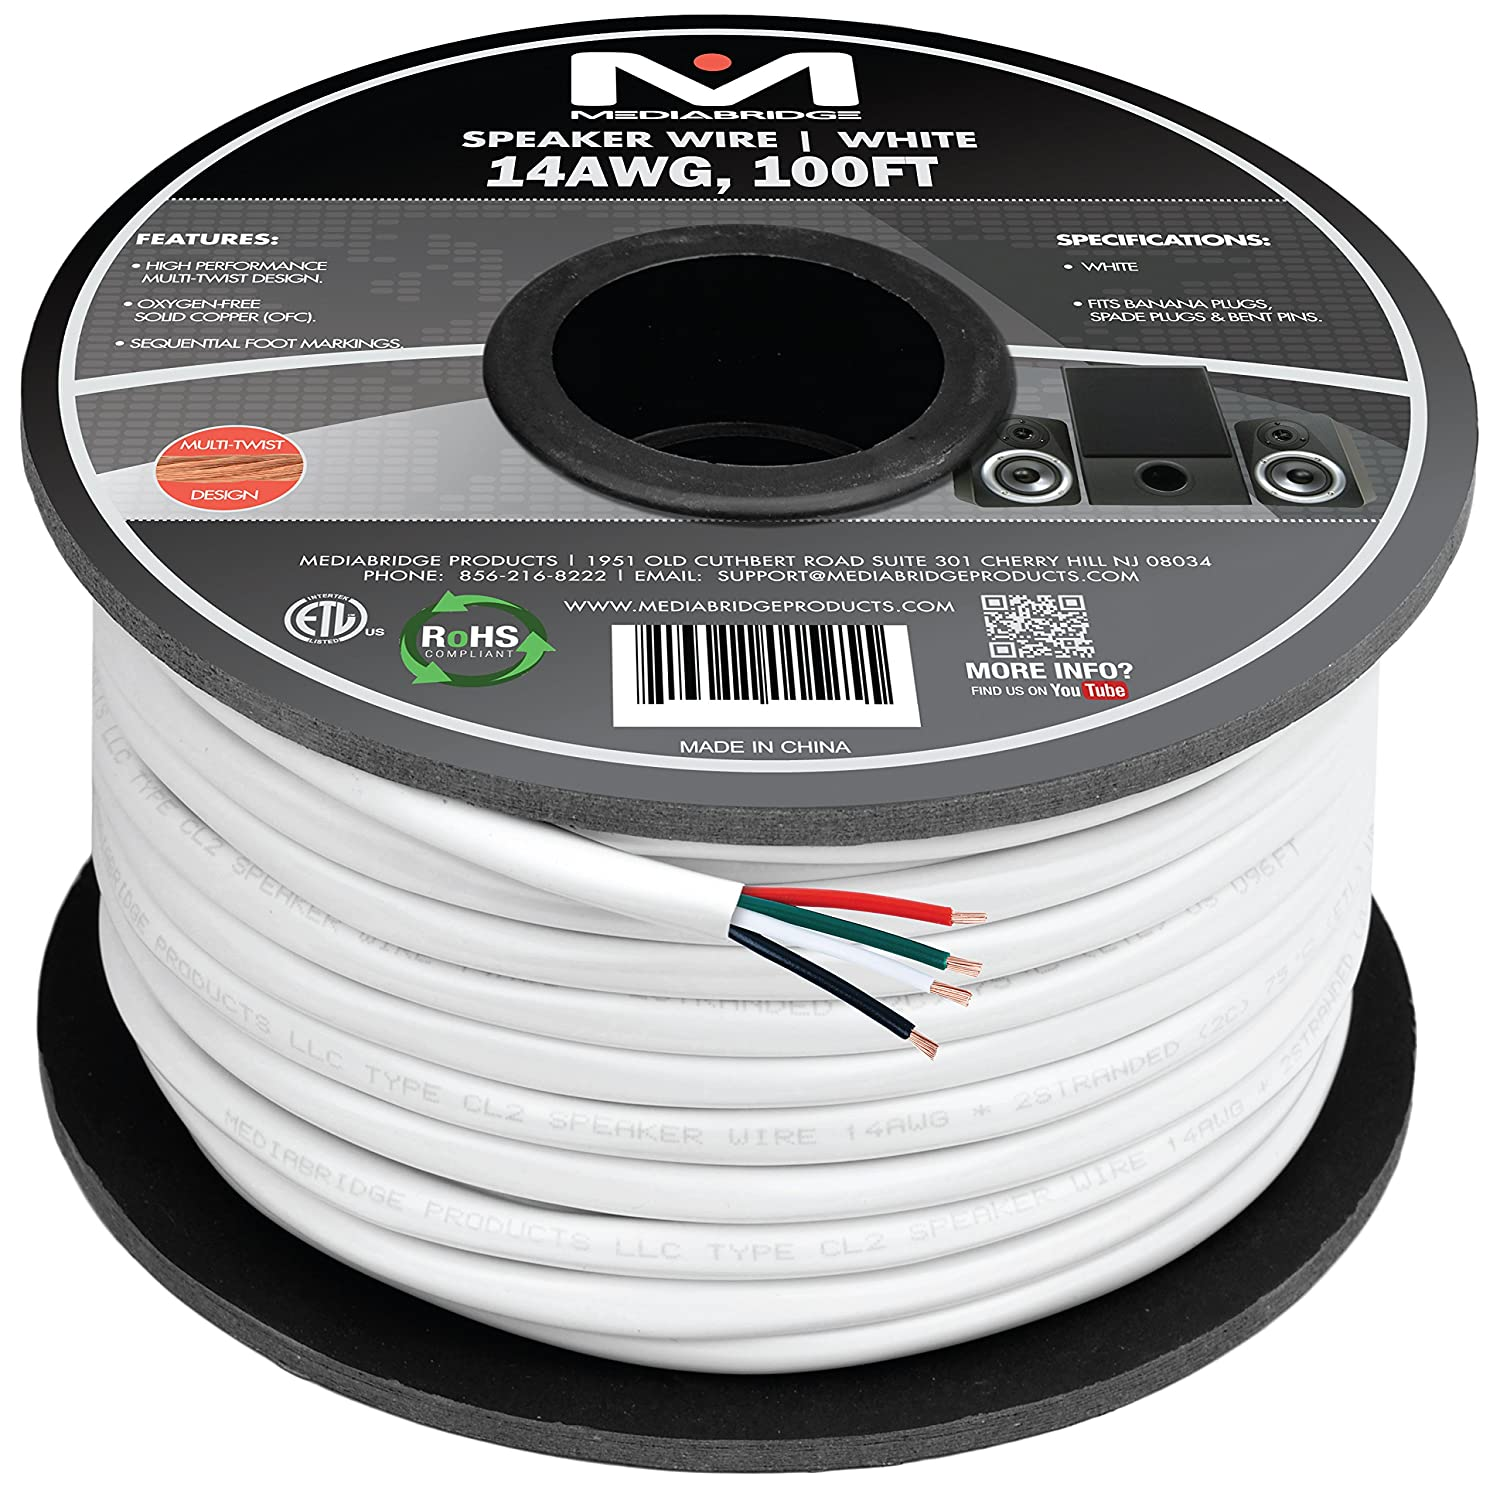 Amazon.com: Mediabridge 14AWG 4-Conductor Speaker Wire (100 Feet ...